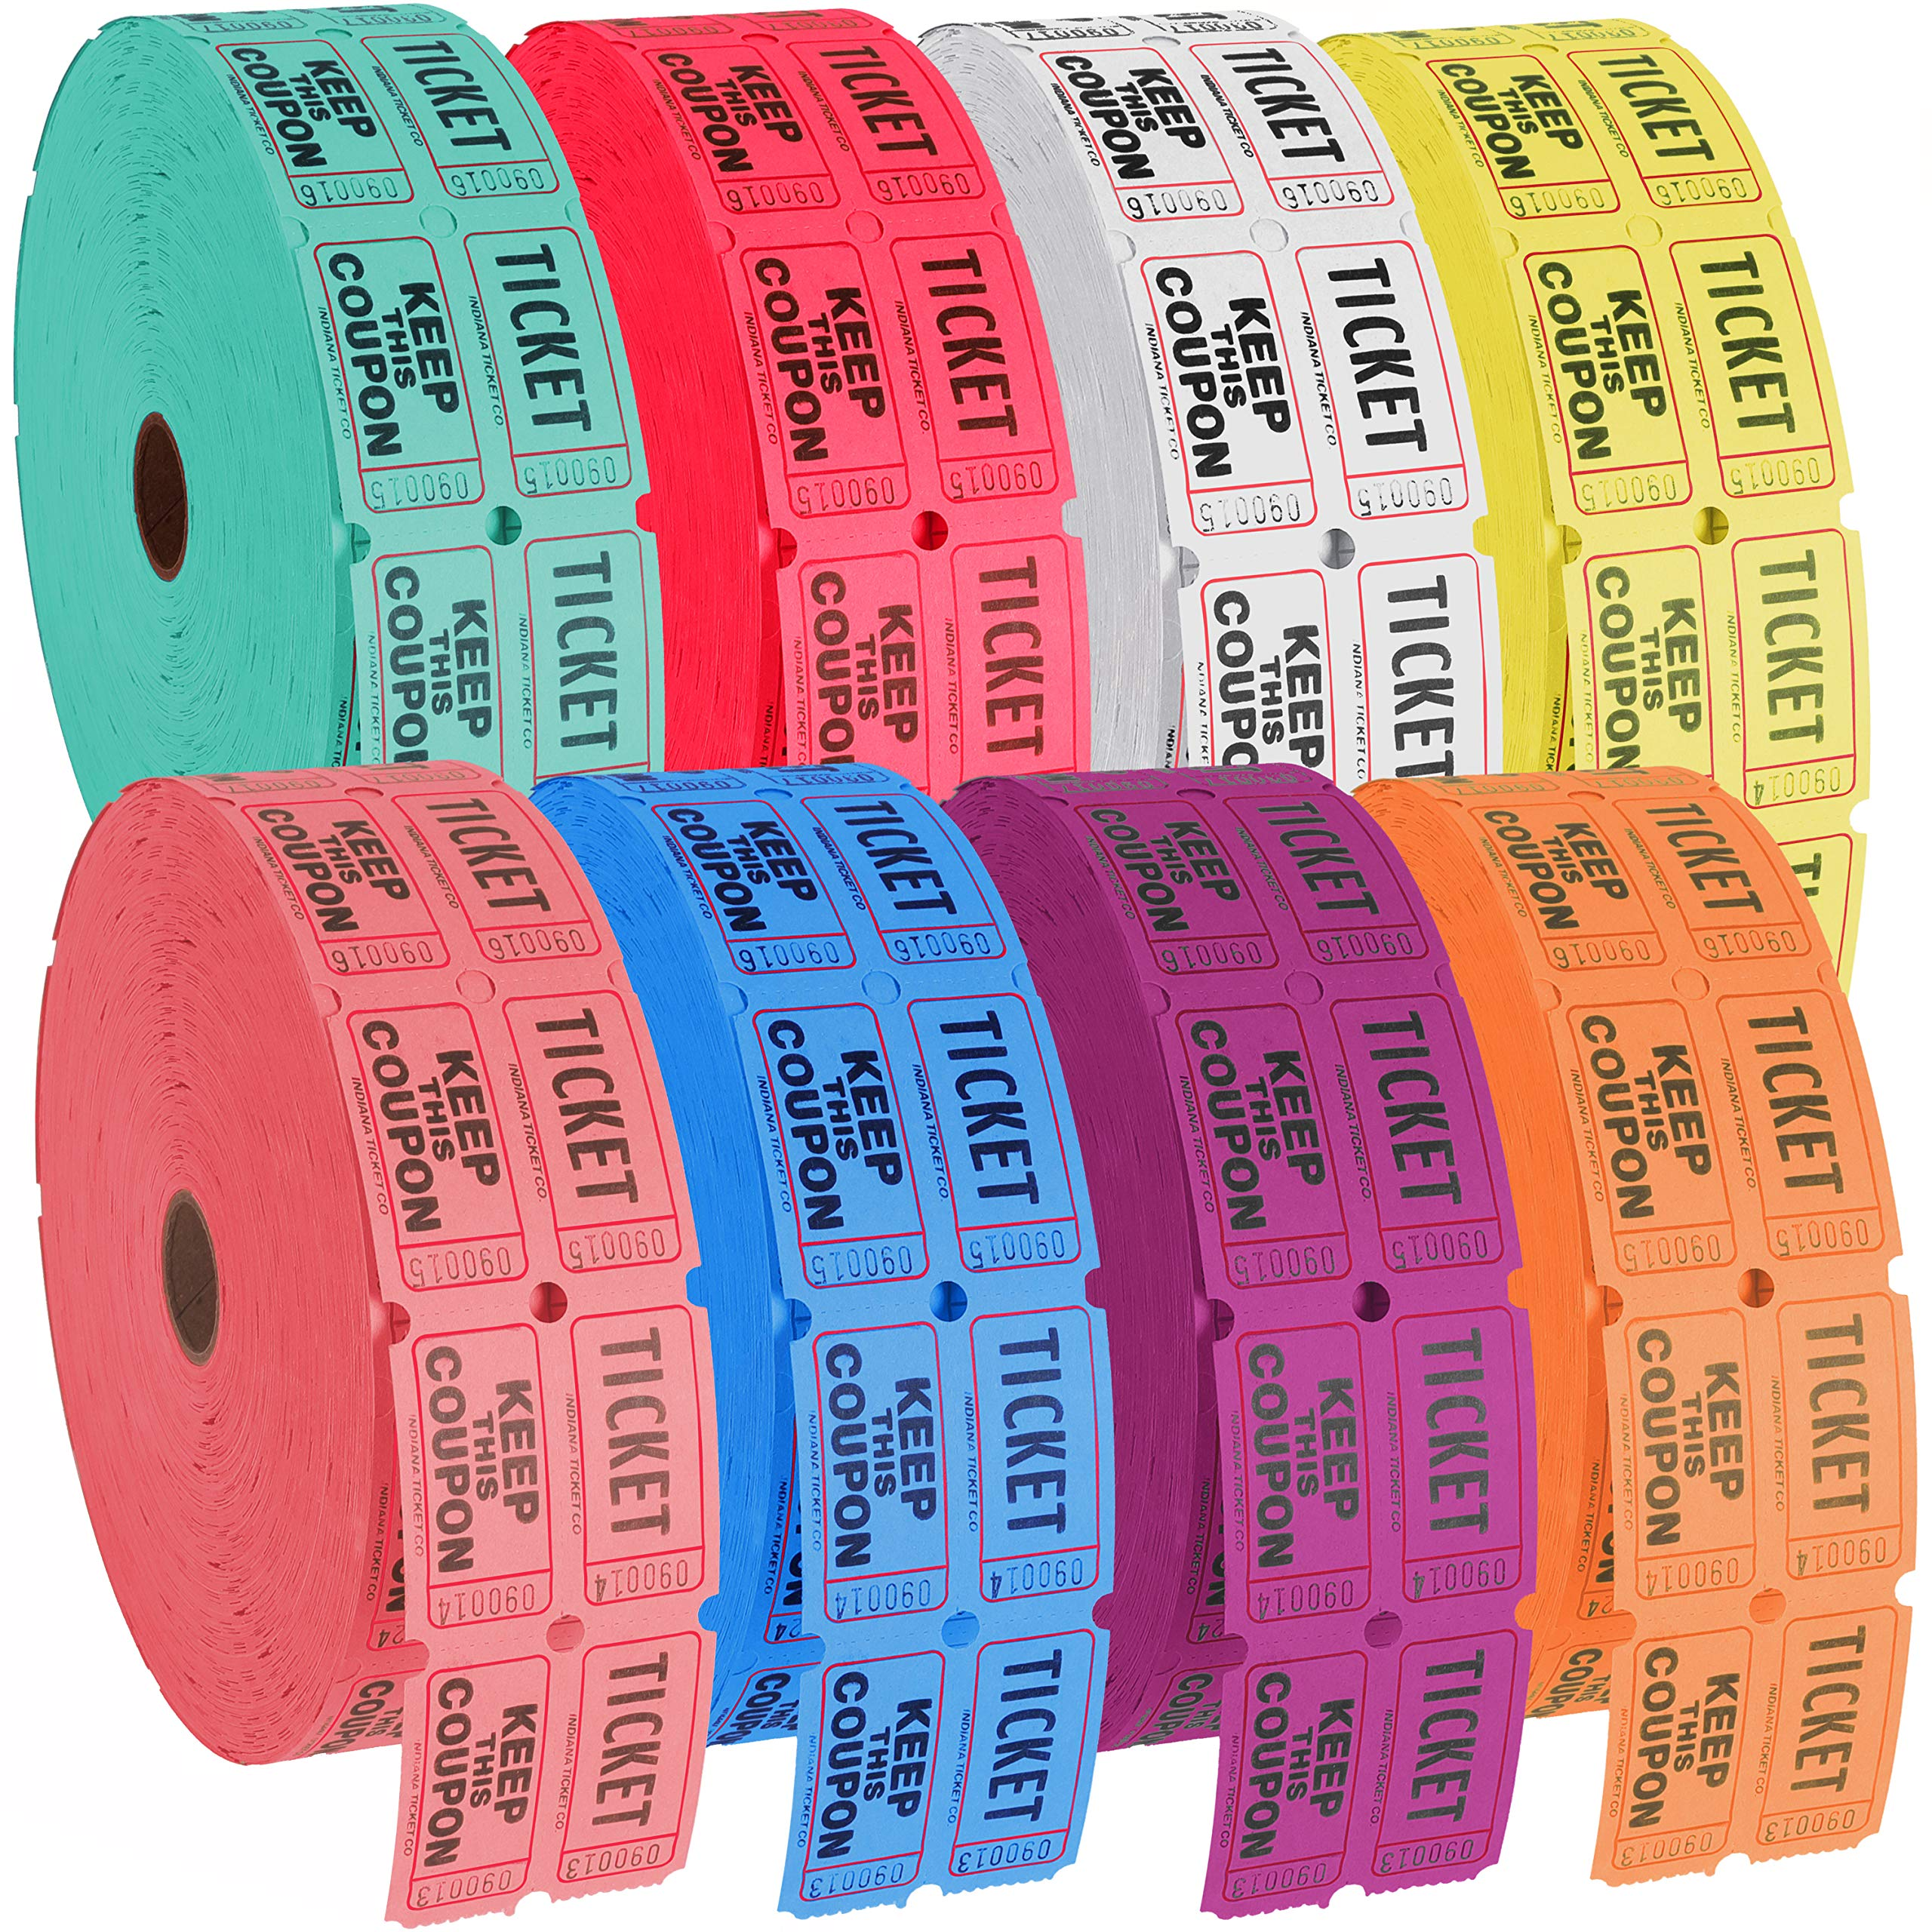 Narwhal Novelties Raffle Tickets, 8-Tickets Roll of 2000 Double Tickets, (16,000) 50/50 Raffle, Carnival, Auction, Fundraiser, Bingo or Drink Tickets, Assorted Colors